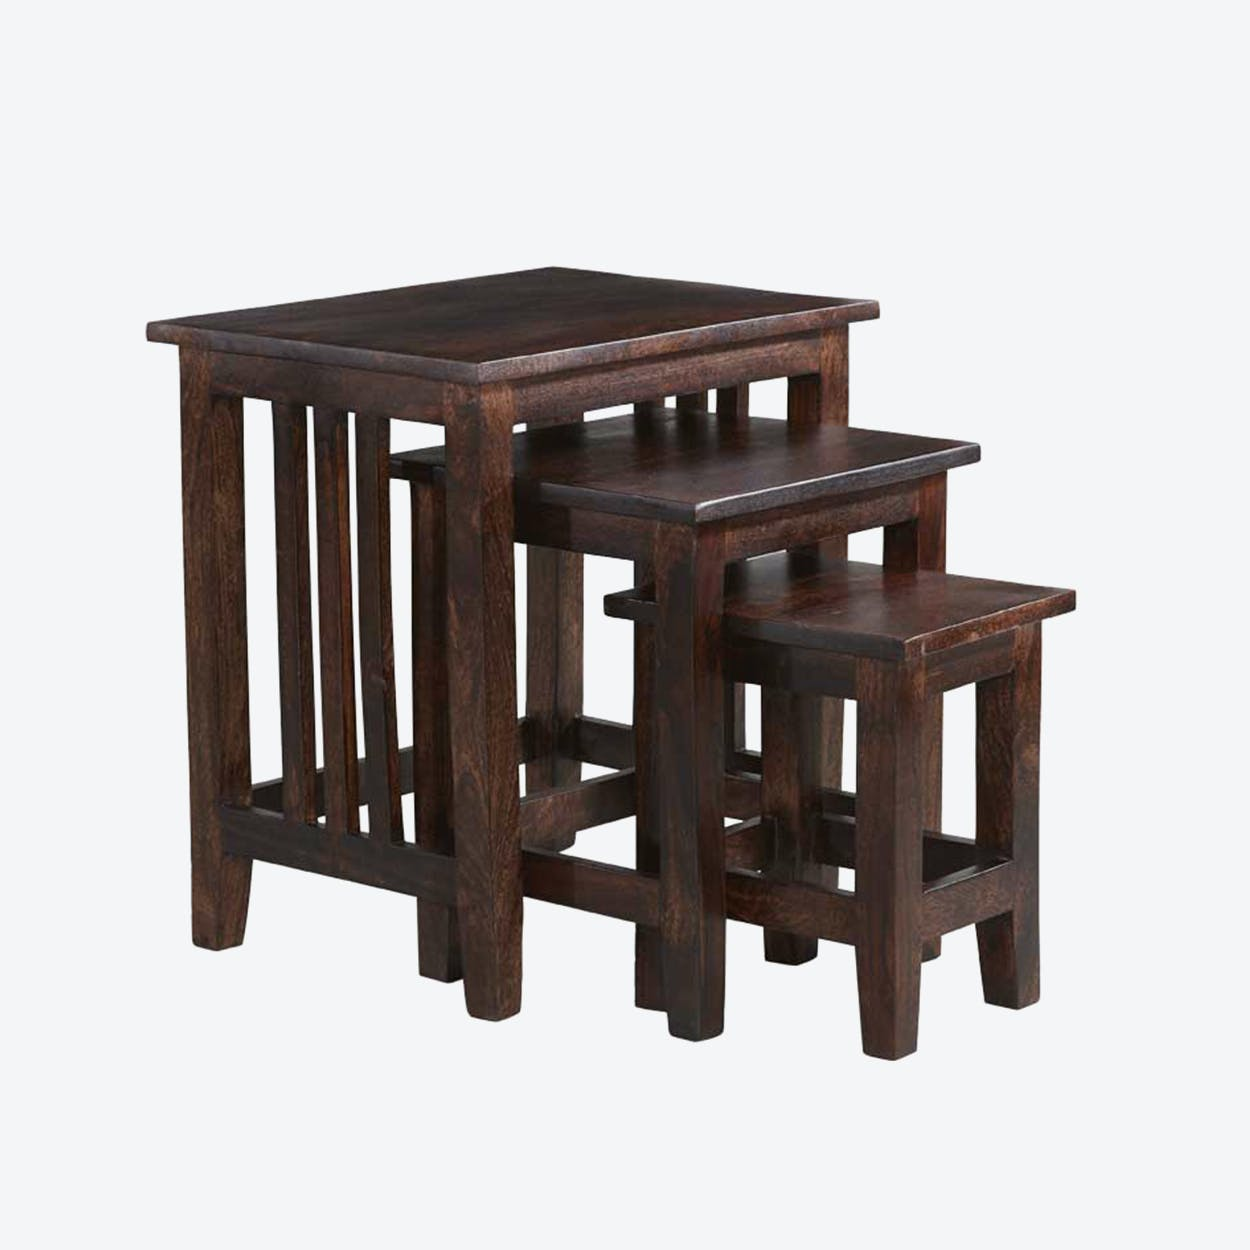 Wooden Mango Large Nest of 3 Tables